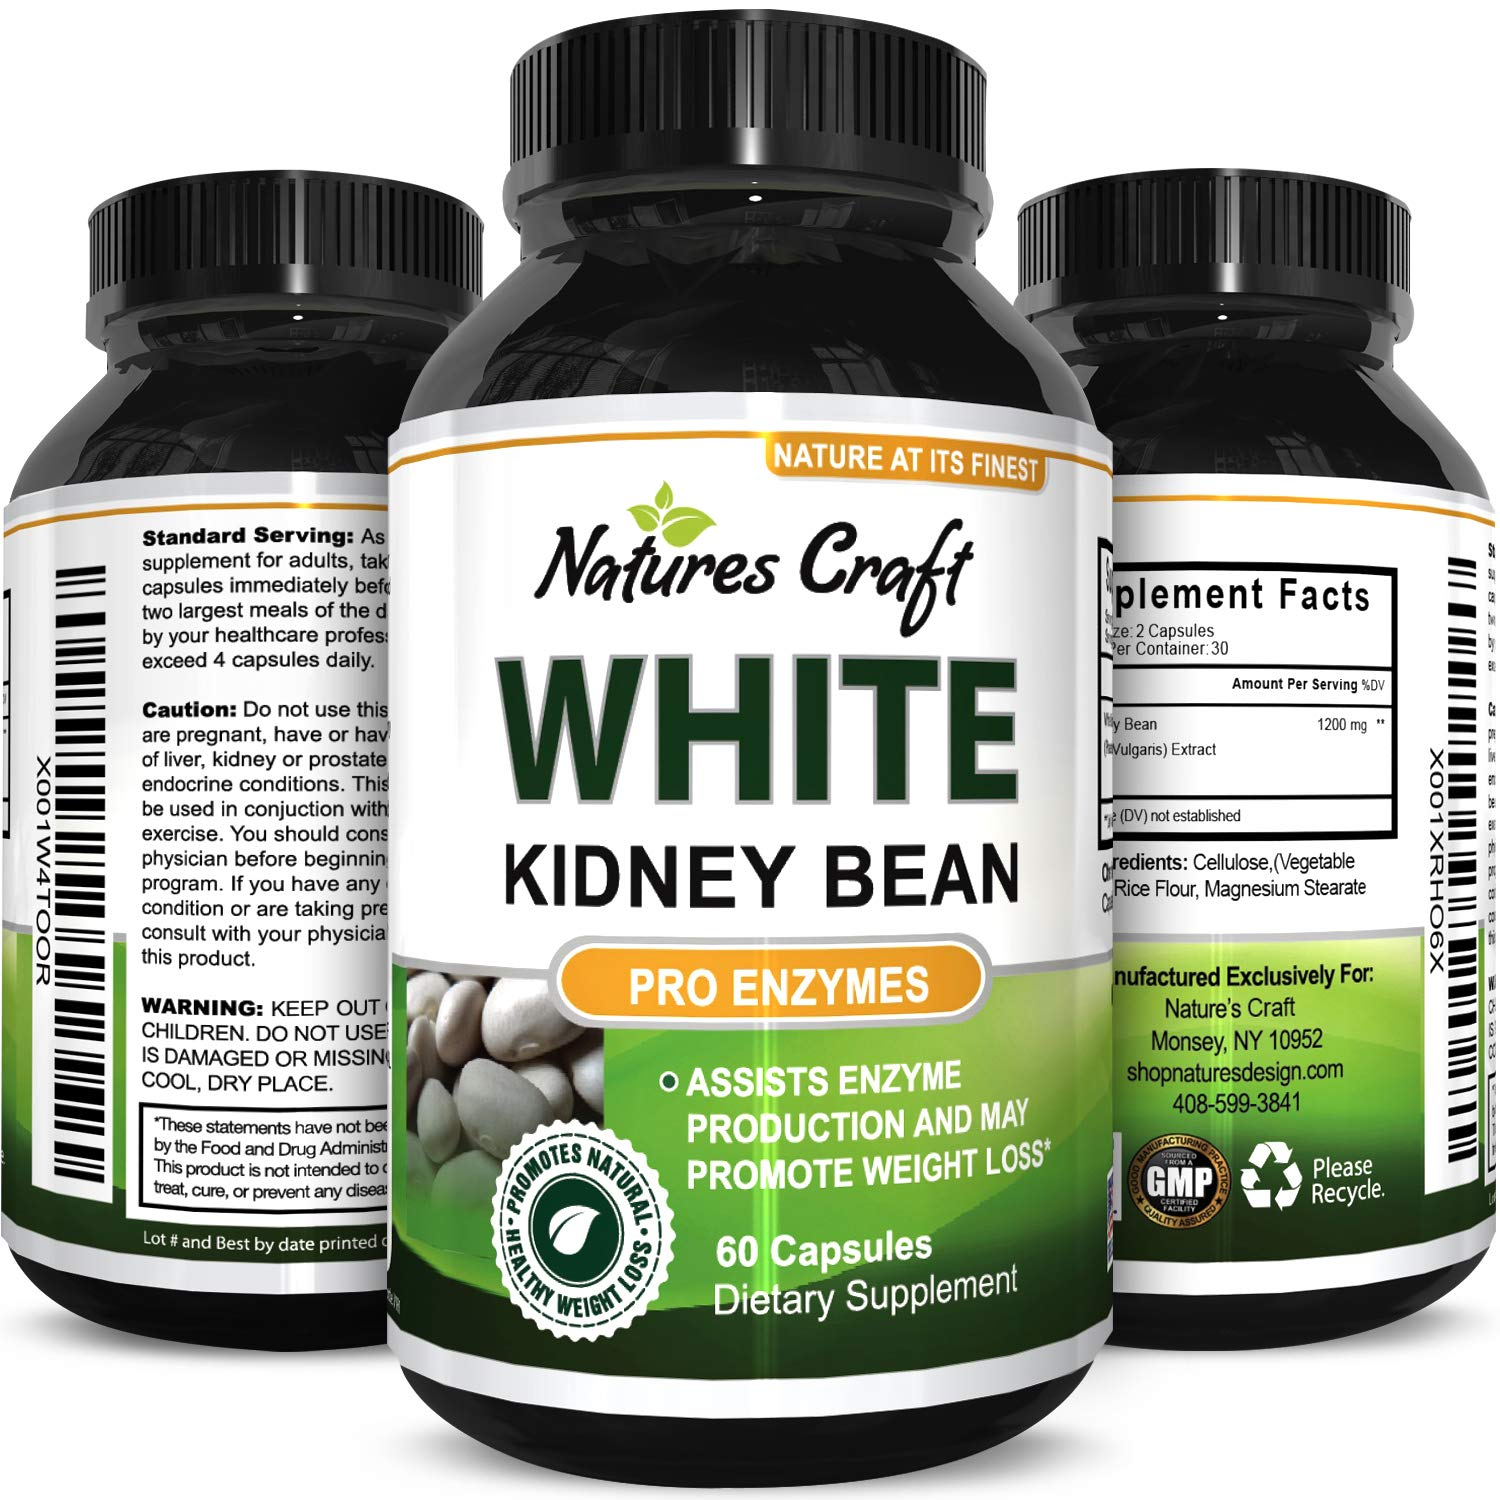 Pure White Kidney Bean Extract Effective and Optimized for Weight Loss – Carb Blocker and Prevents Fat from Forming – USA Made by Natures Craft